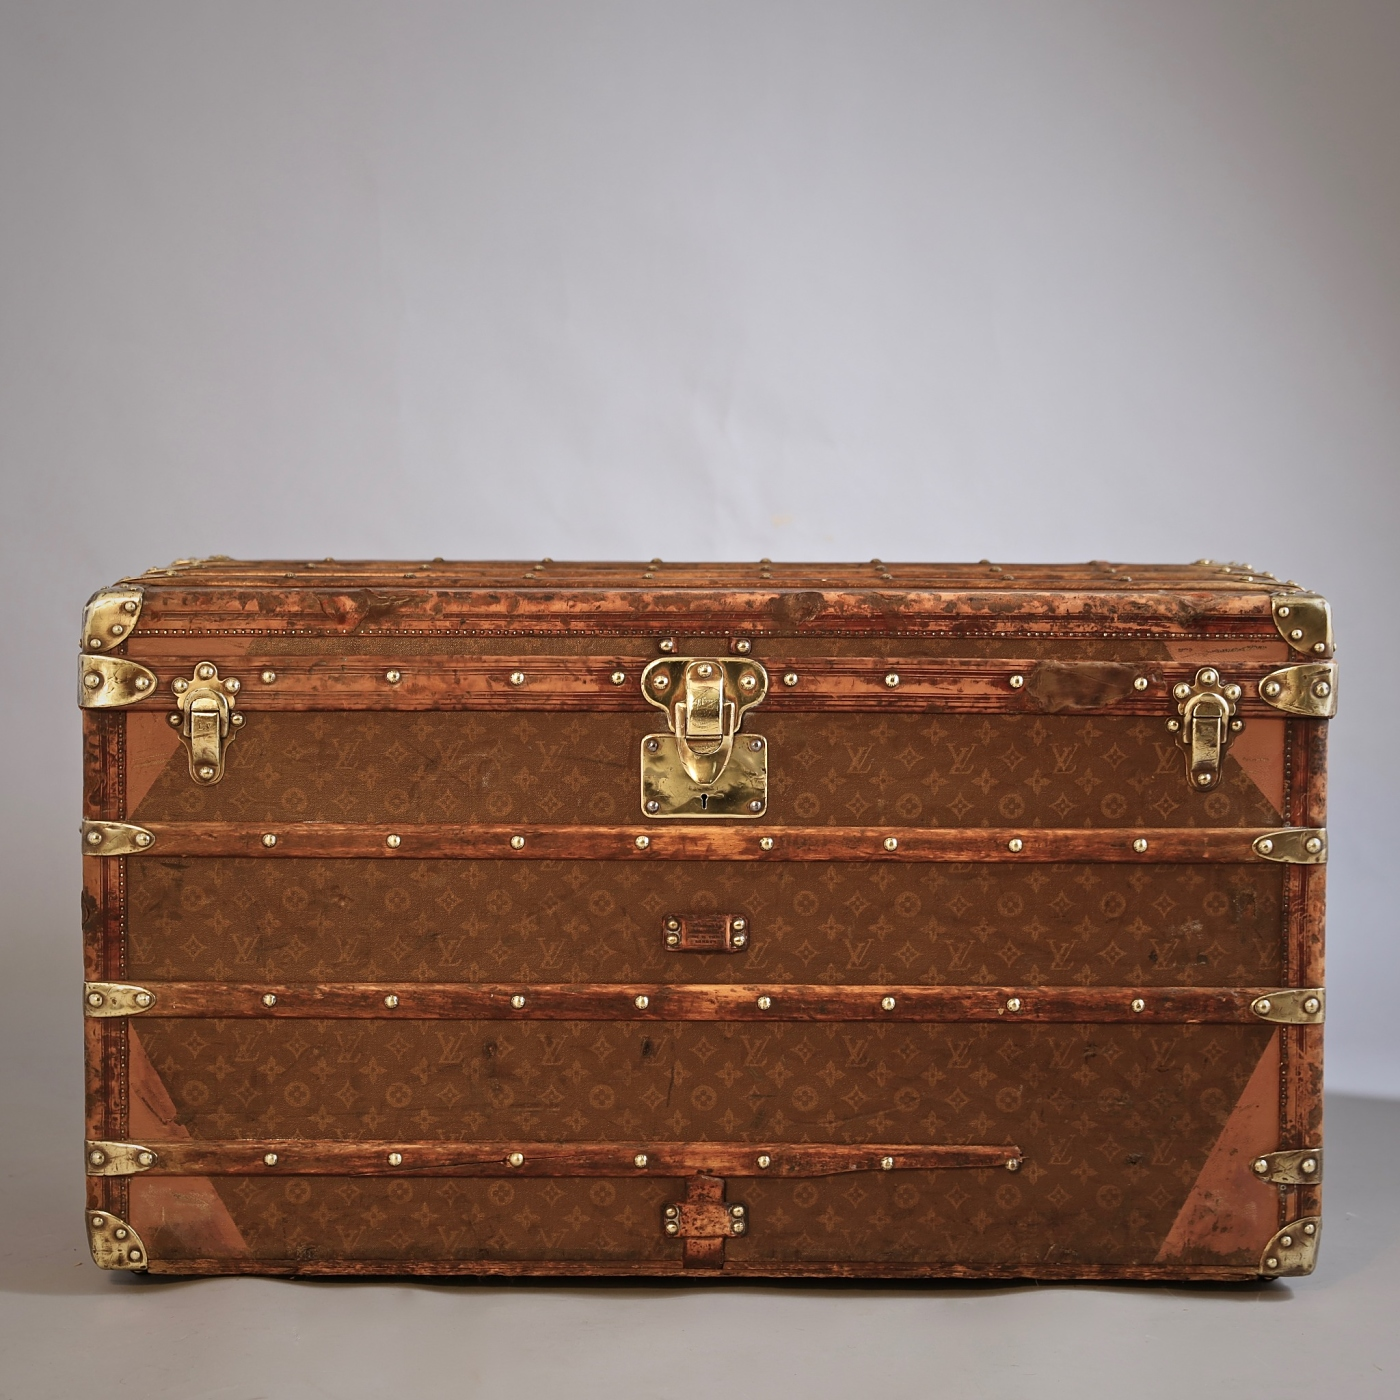 he-well-traveled-trunk-louis-vuitton-thumbnail-product-5685B